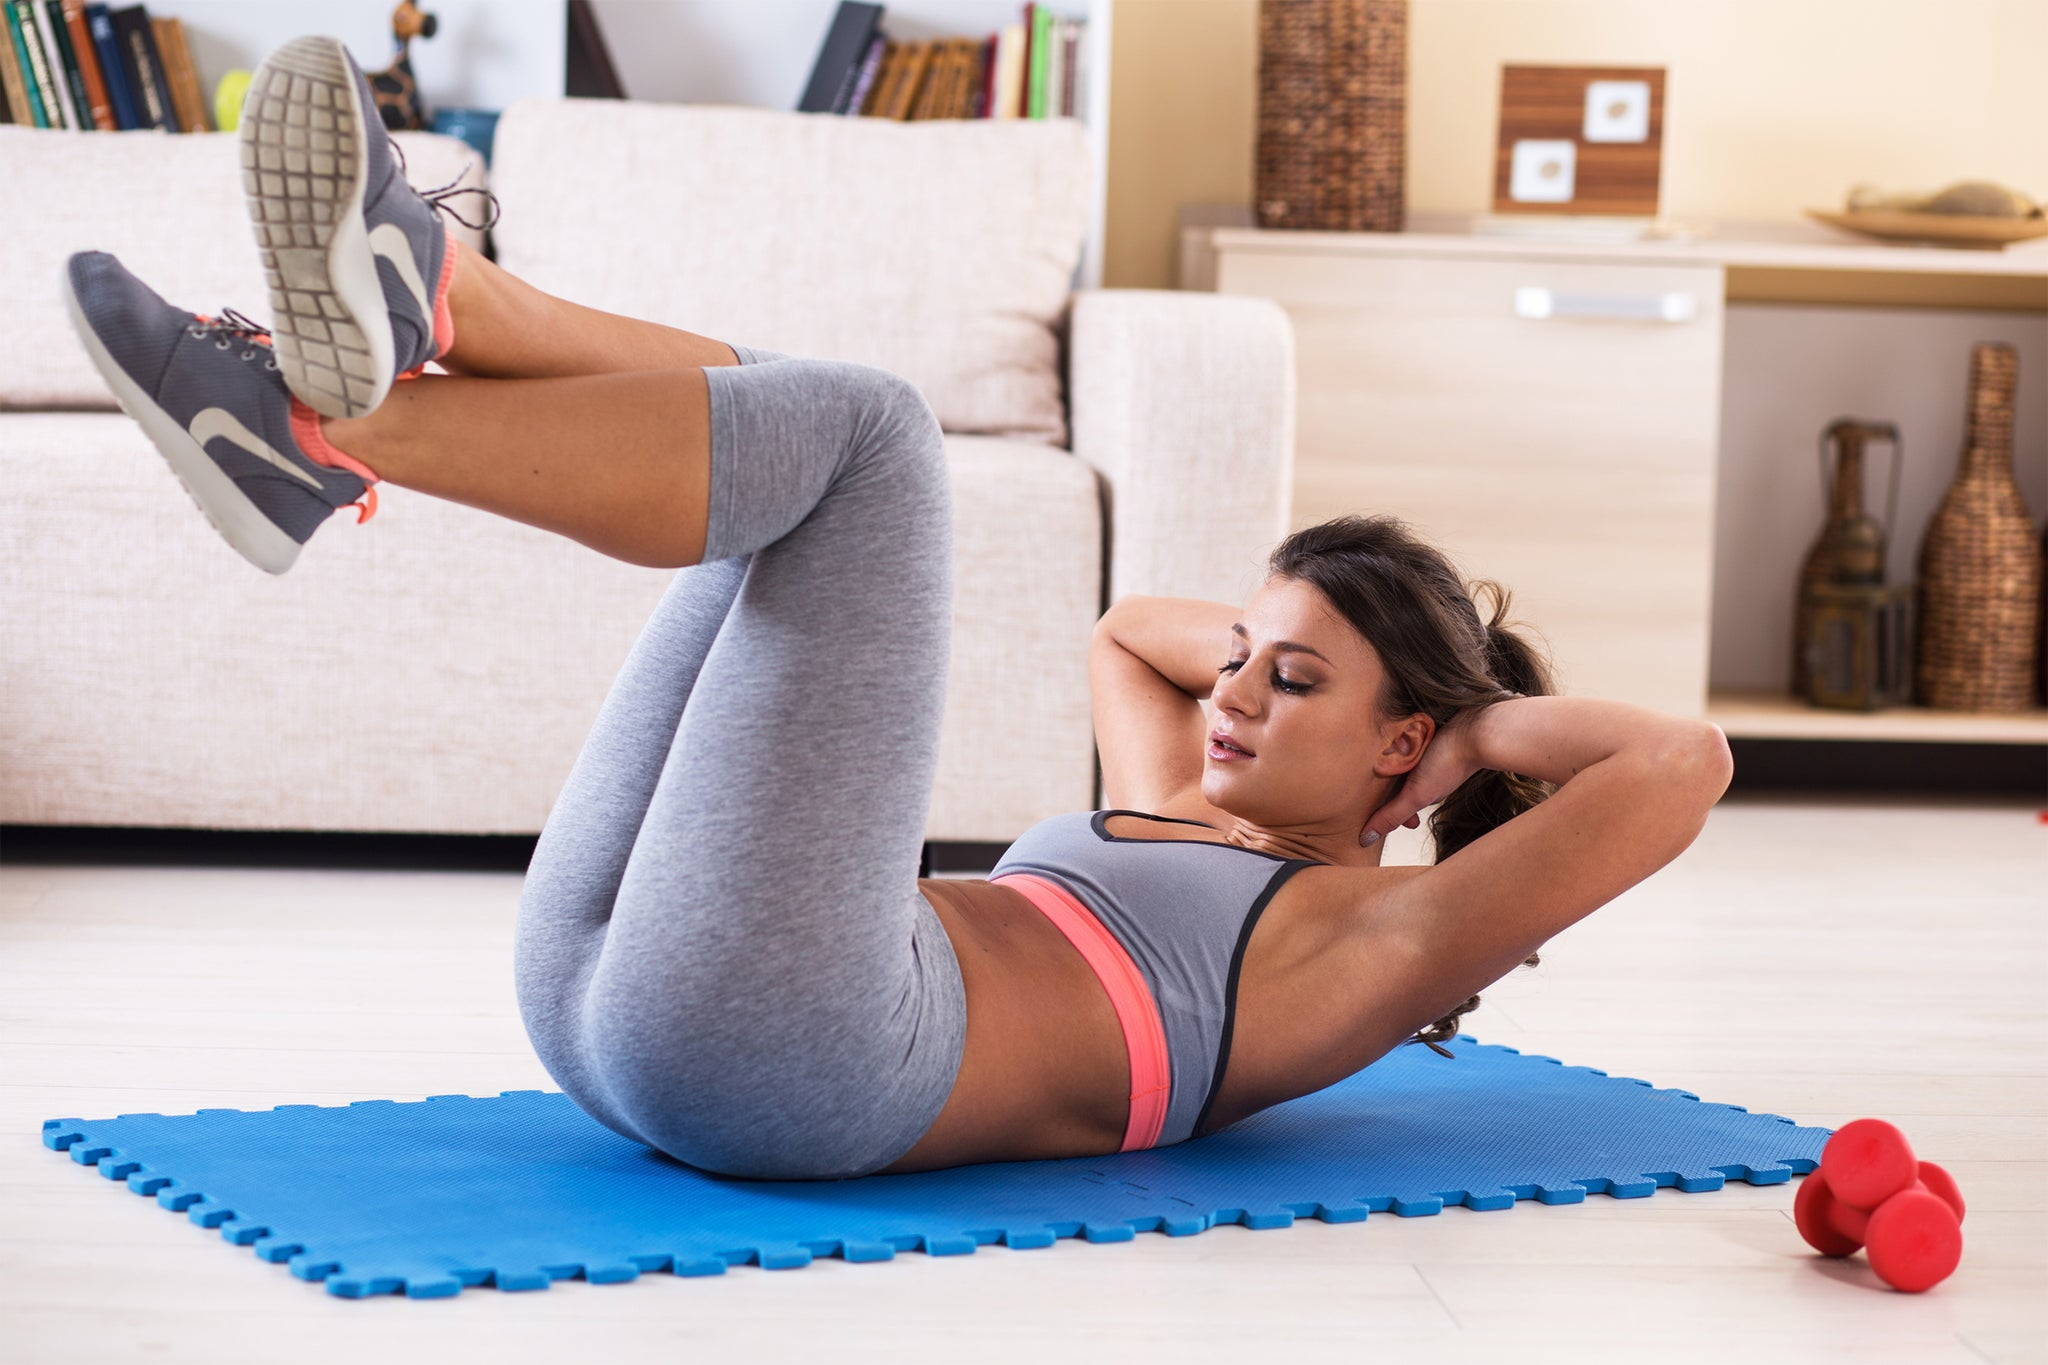 7 Free Home Workouts You Can Start Today